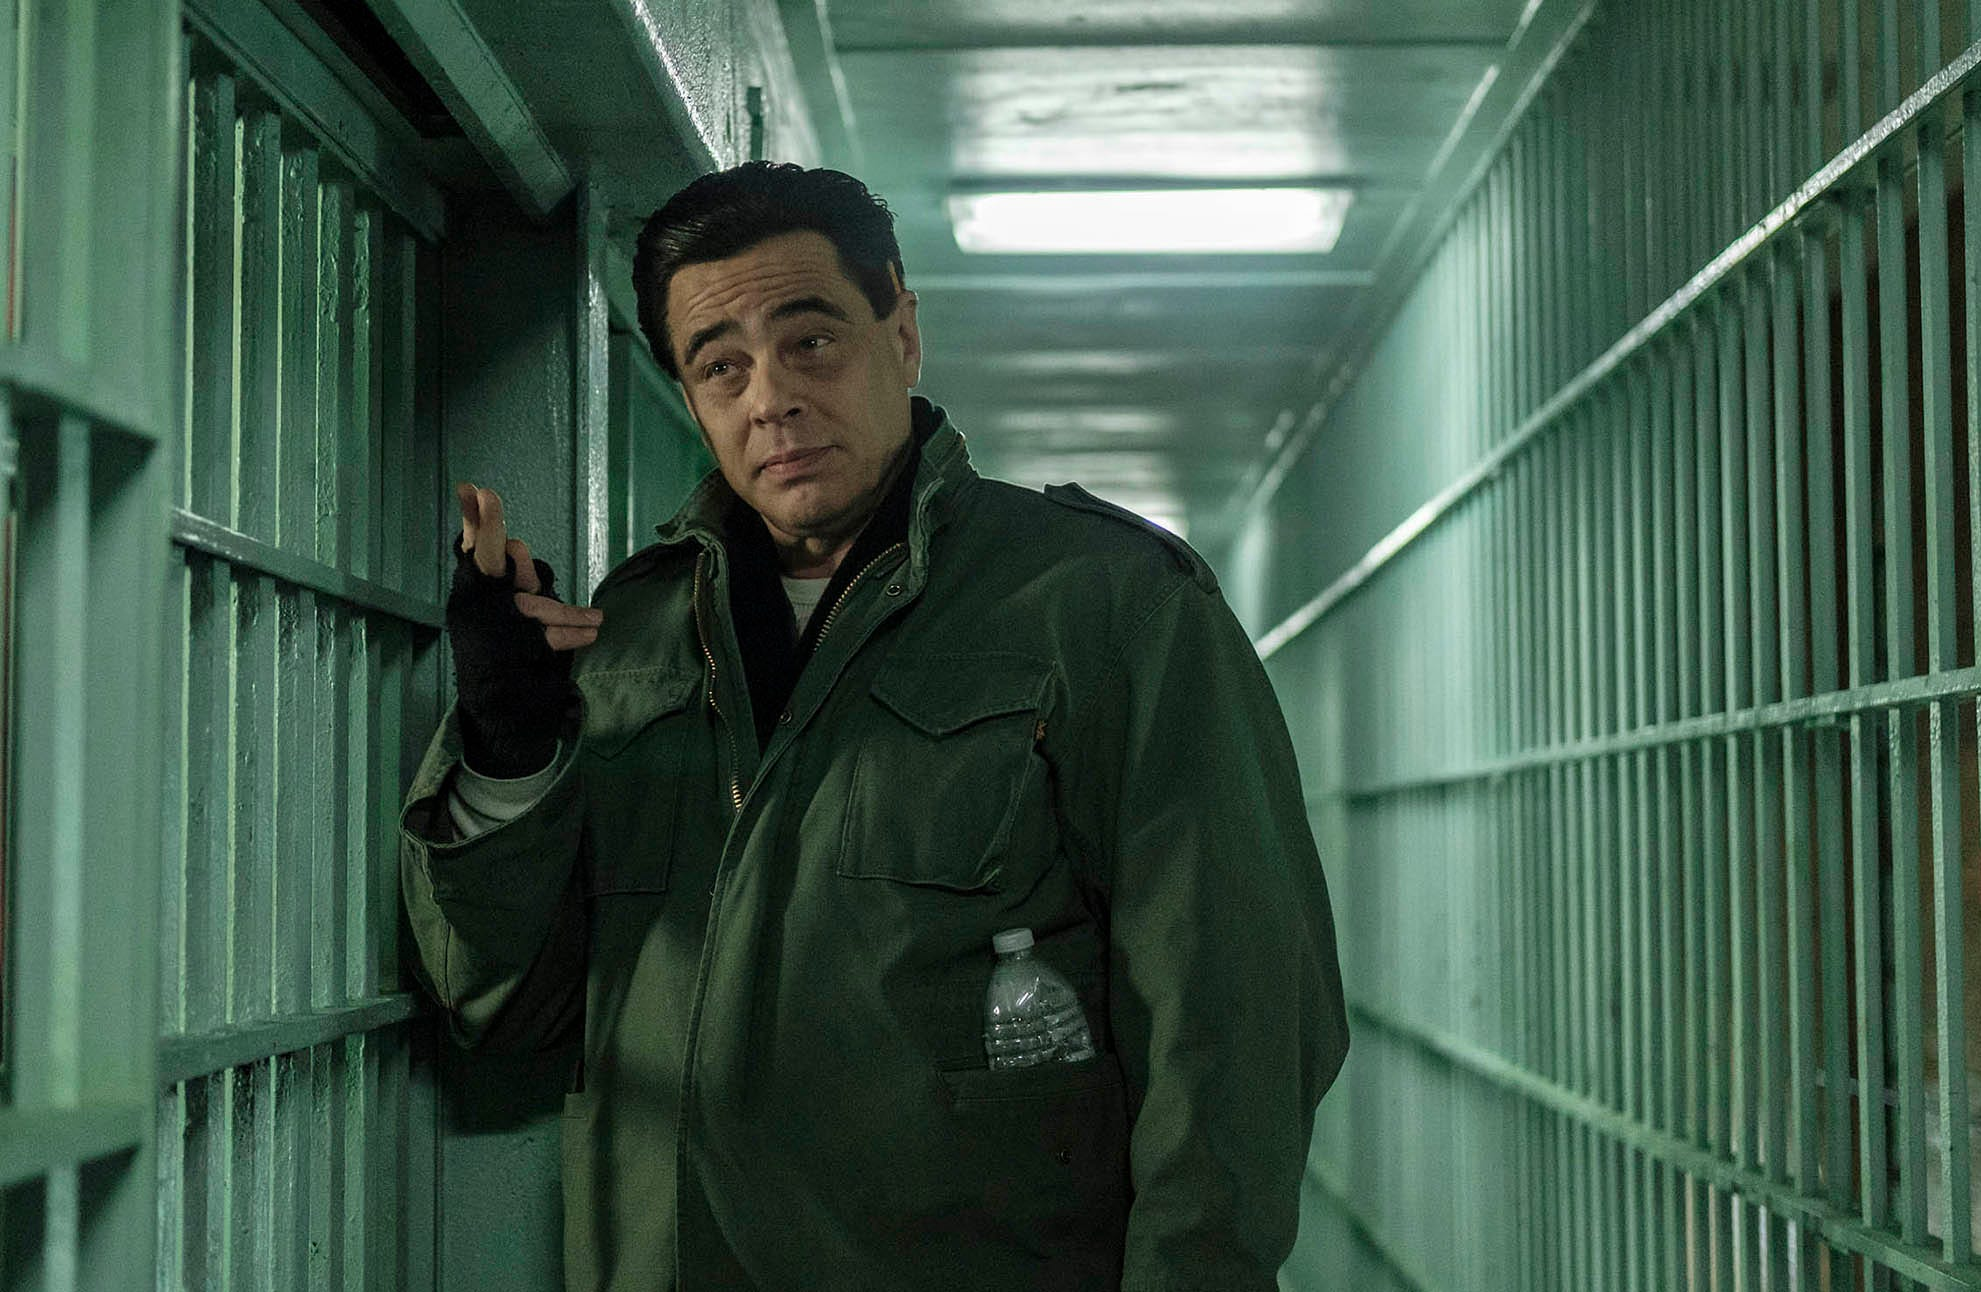 Benicio Del Toro as Richard Matt in Escape at Dannemora (Episode 1).